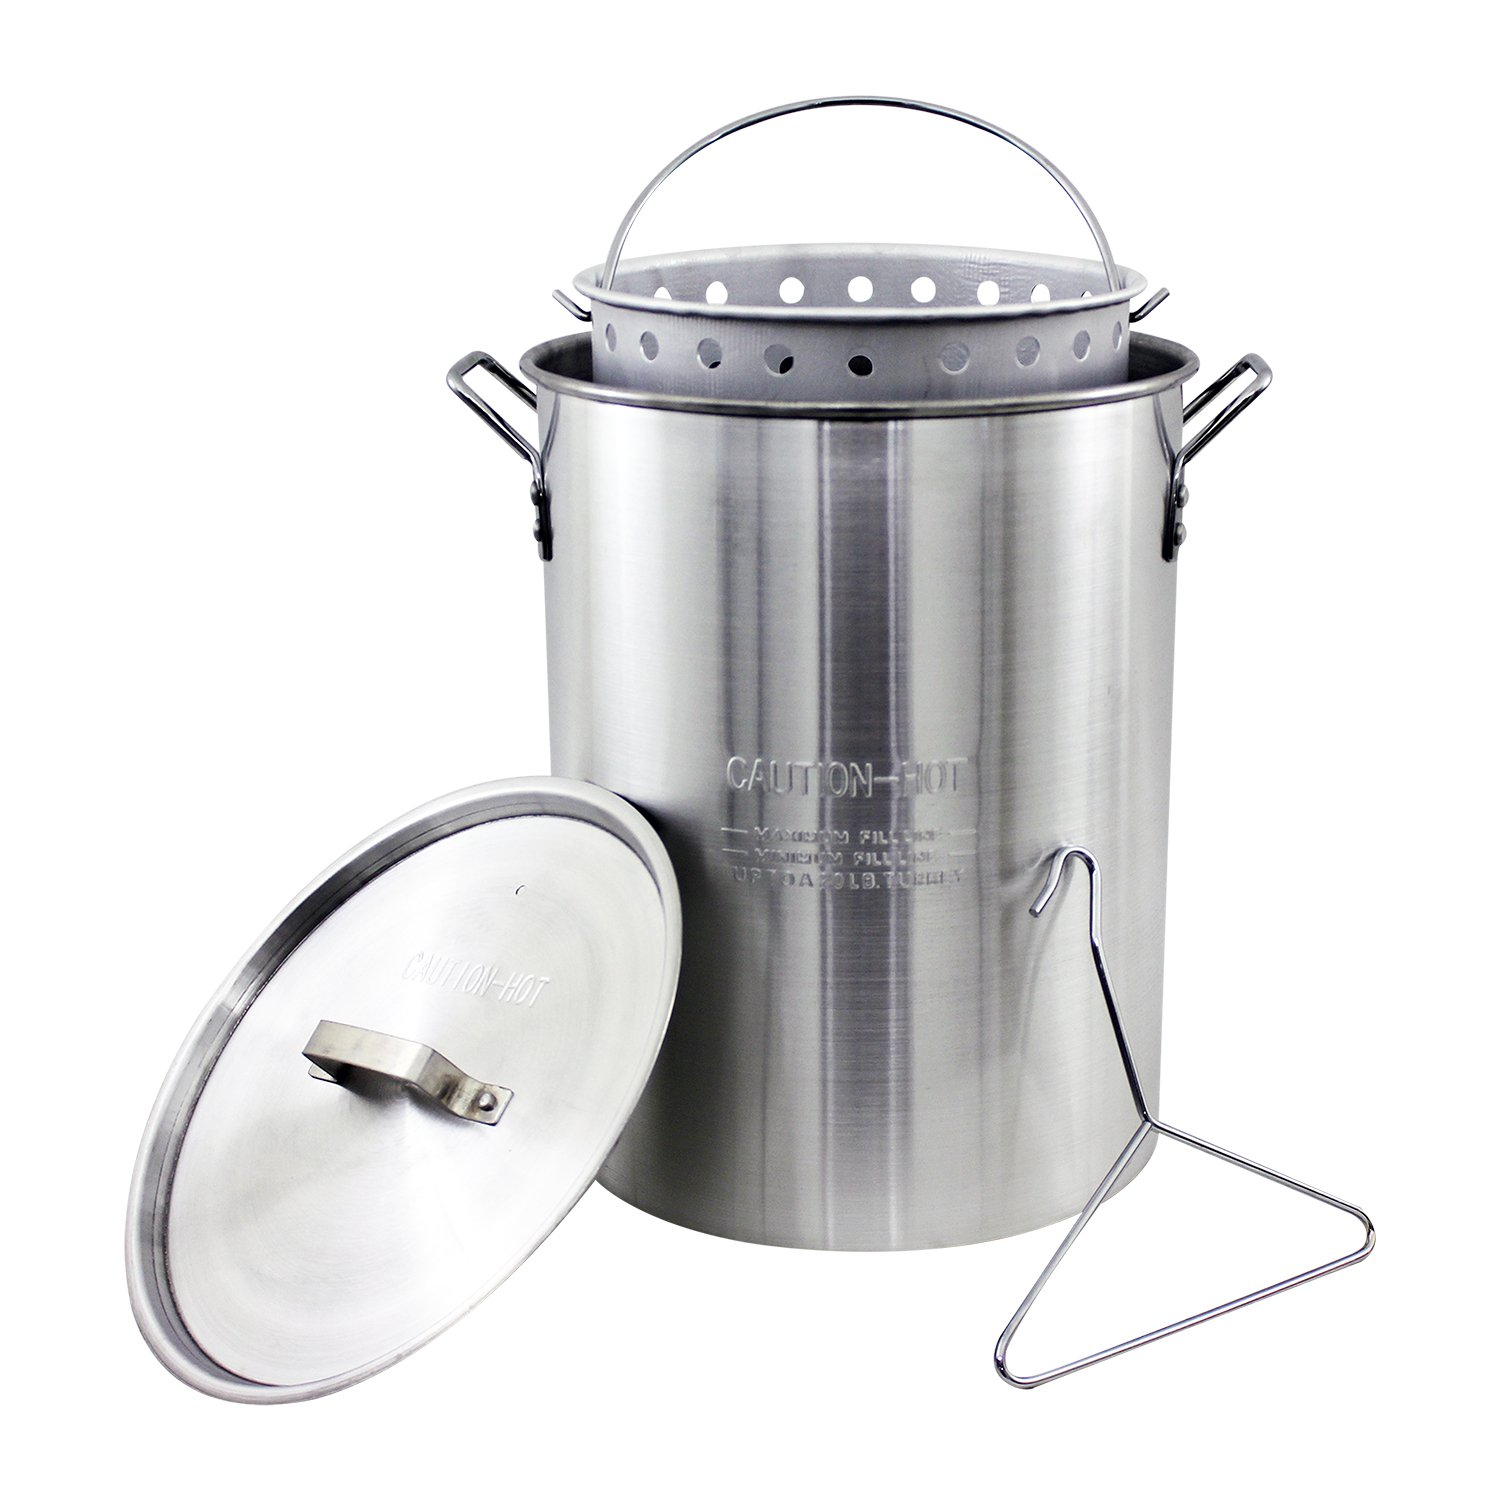 Chard ASP30, Aluminum Stock Pot and Perforated Strainer Basket with Safety Hanger, 30 Quart by Chard